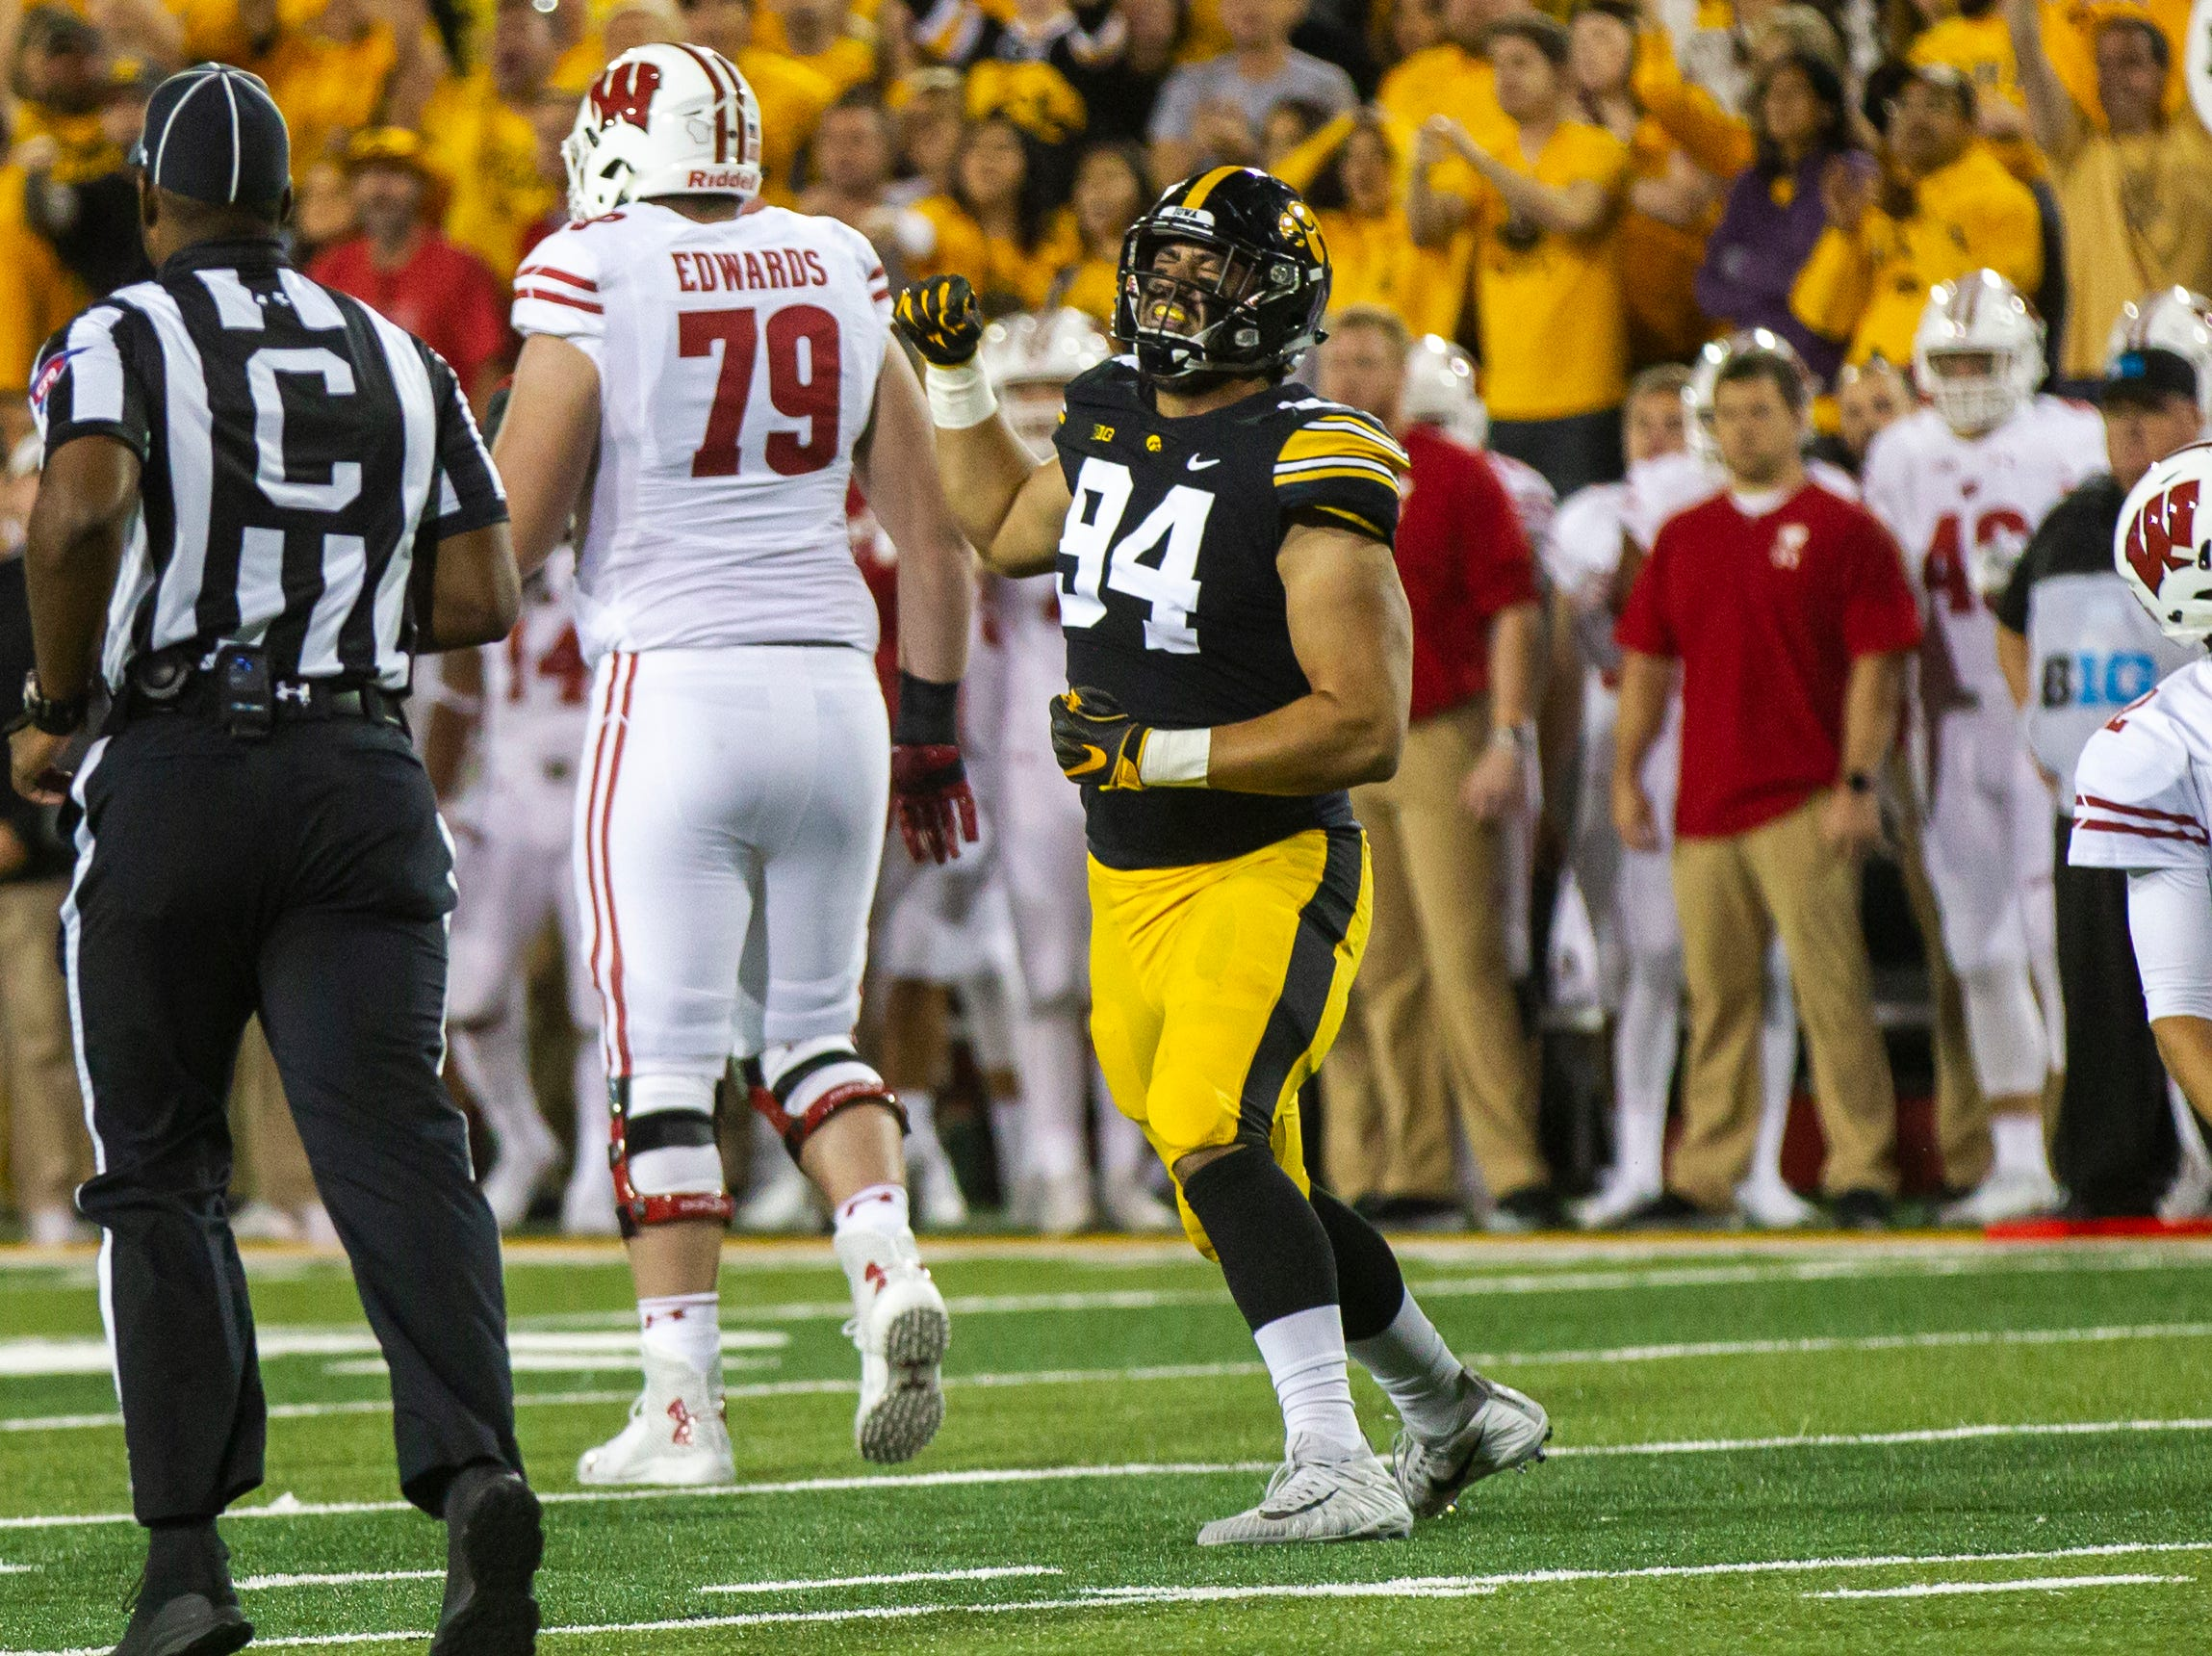 Iowa defensive end A.J. Epenesa (94) celebrates after a sack during an NCAA football game on Saturday, Sept. 22, 2018, at Kinnick Stadium in Iowa City.